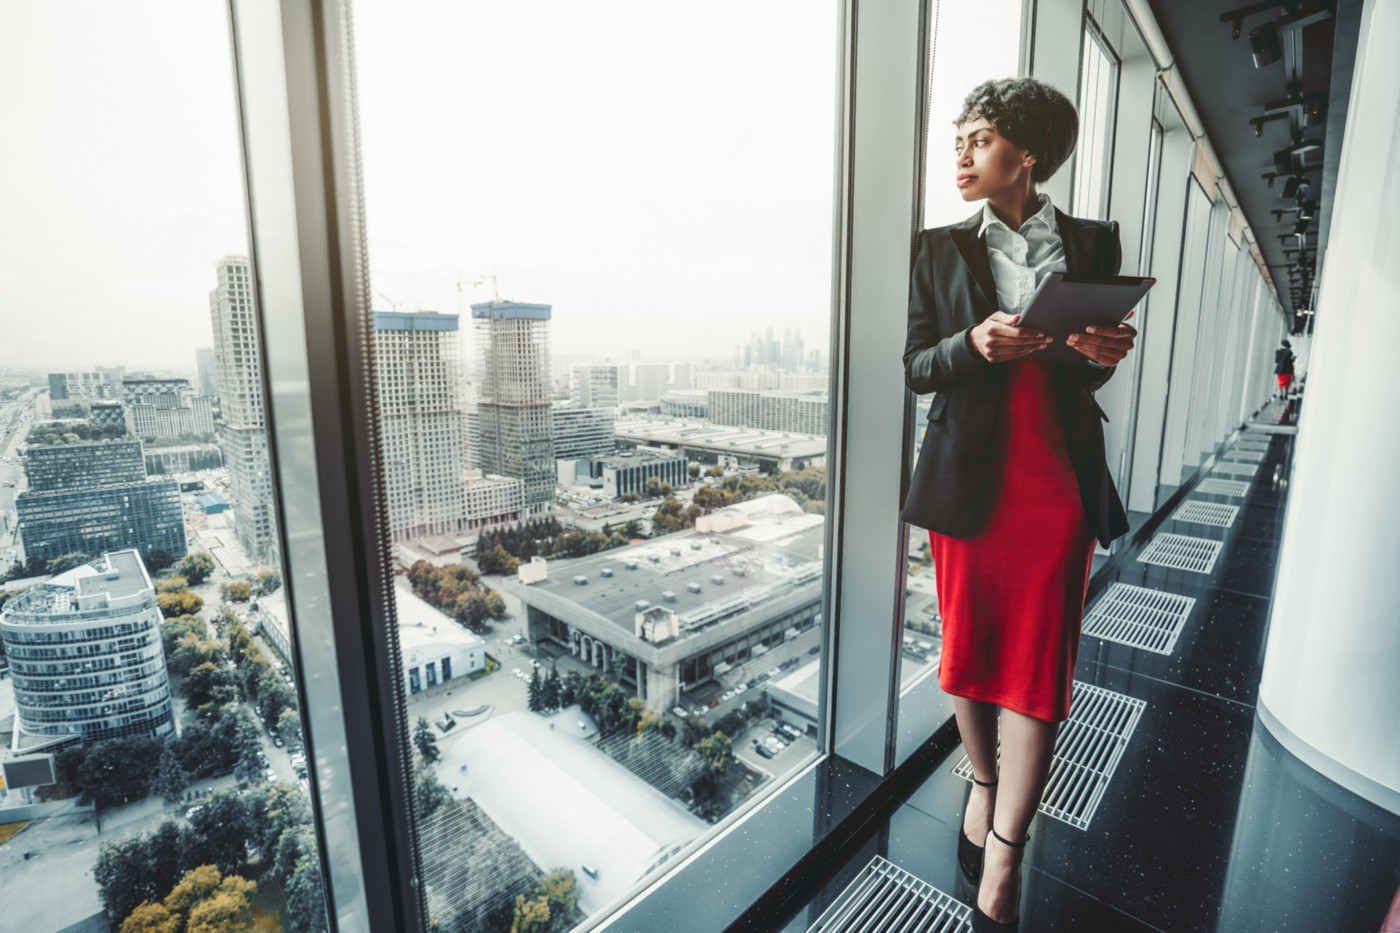 A woman looks out of a skyscraper window at the skyline.